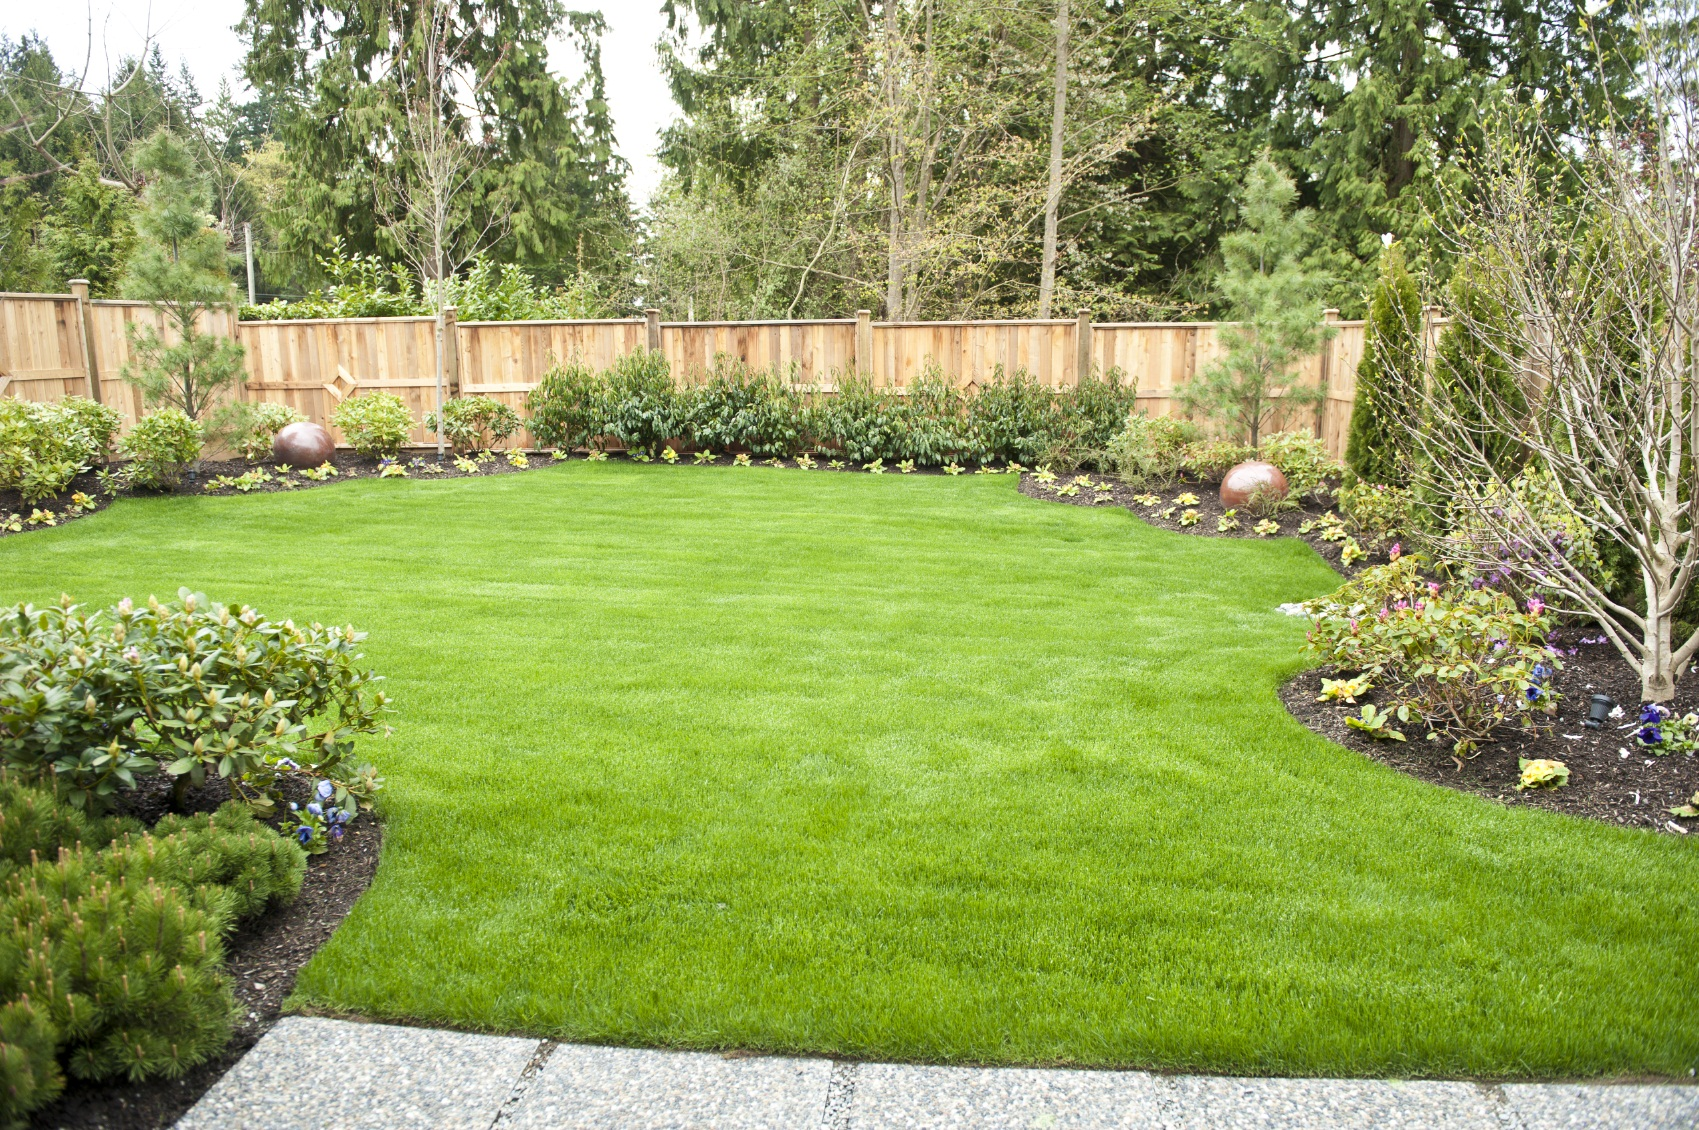 Backyard Landscaping For Privacy Large And Beautiful: backyard landscape photos ideas